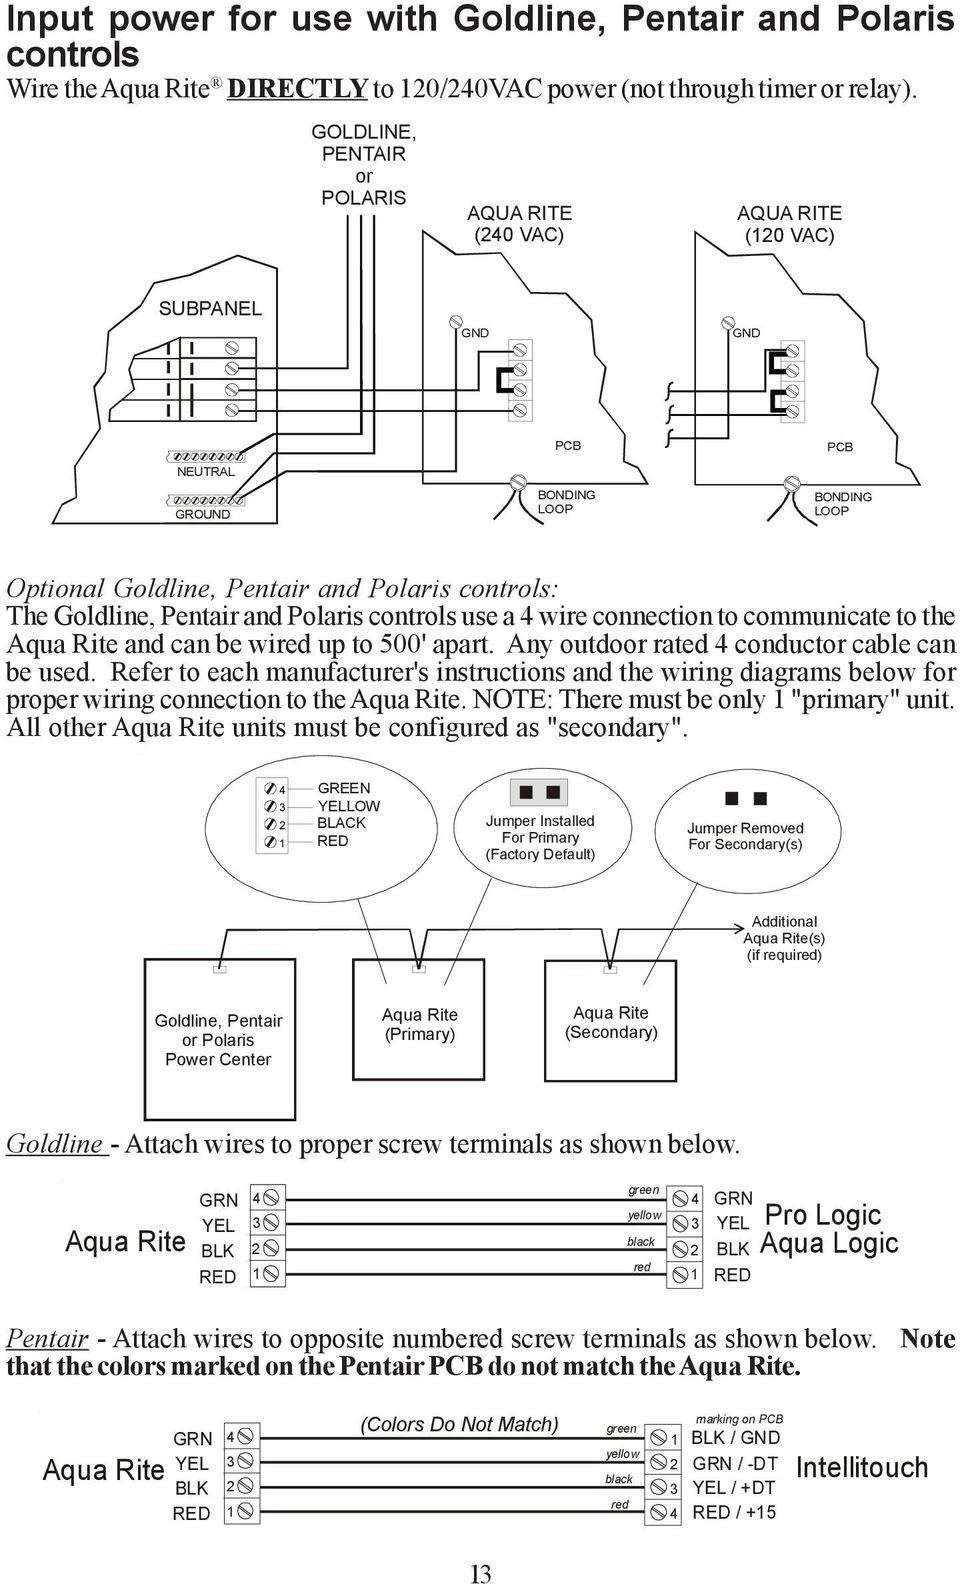 Operation And Installation Manual Aqr Pdf Hayward Aqua Rite Wiring Diagram Pentair Polaris Controls Use A 4 Wire Connection To Communicate The